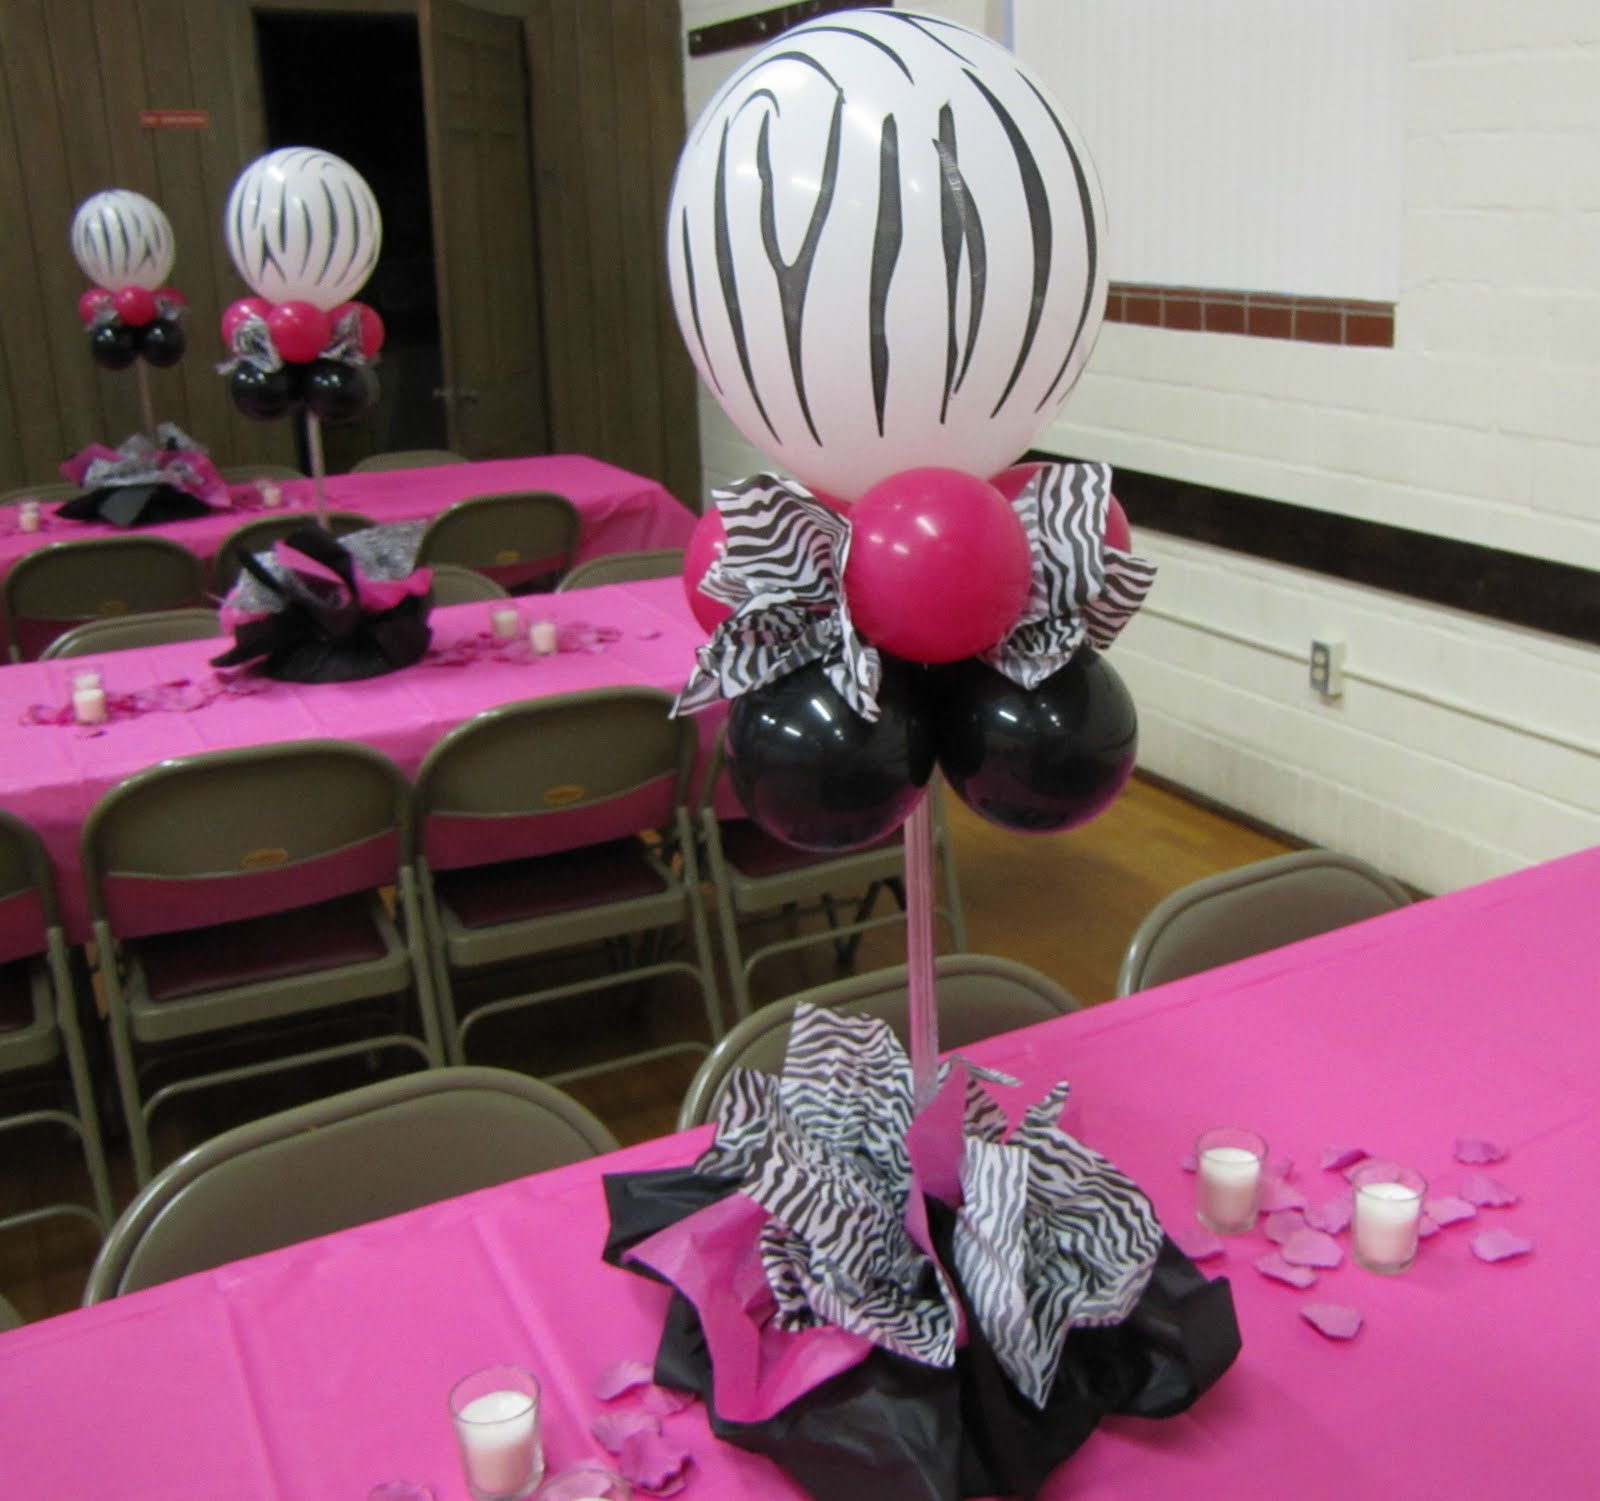 Party people event decorating company wild about you Table decoration ideas for parties